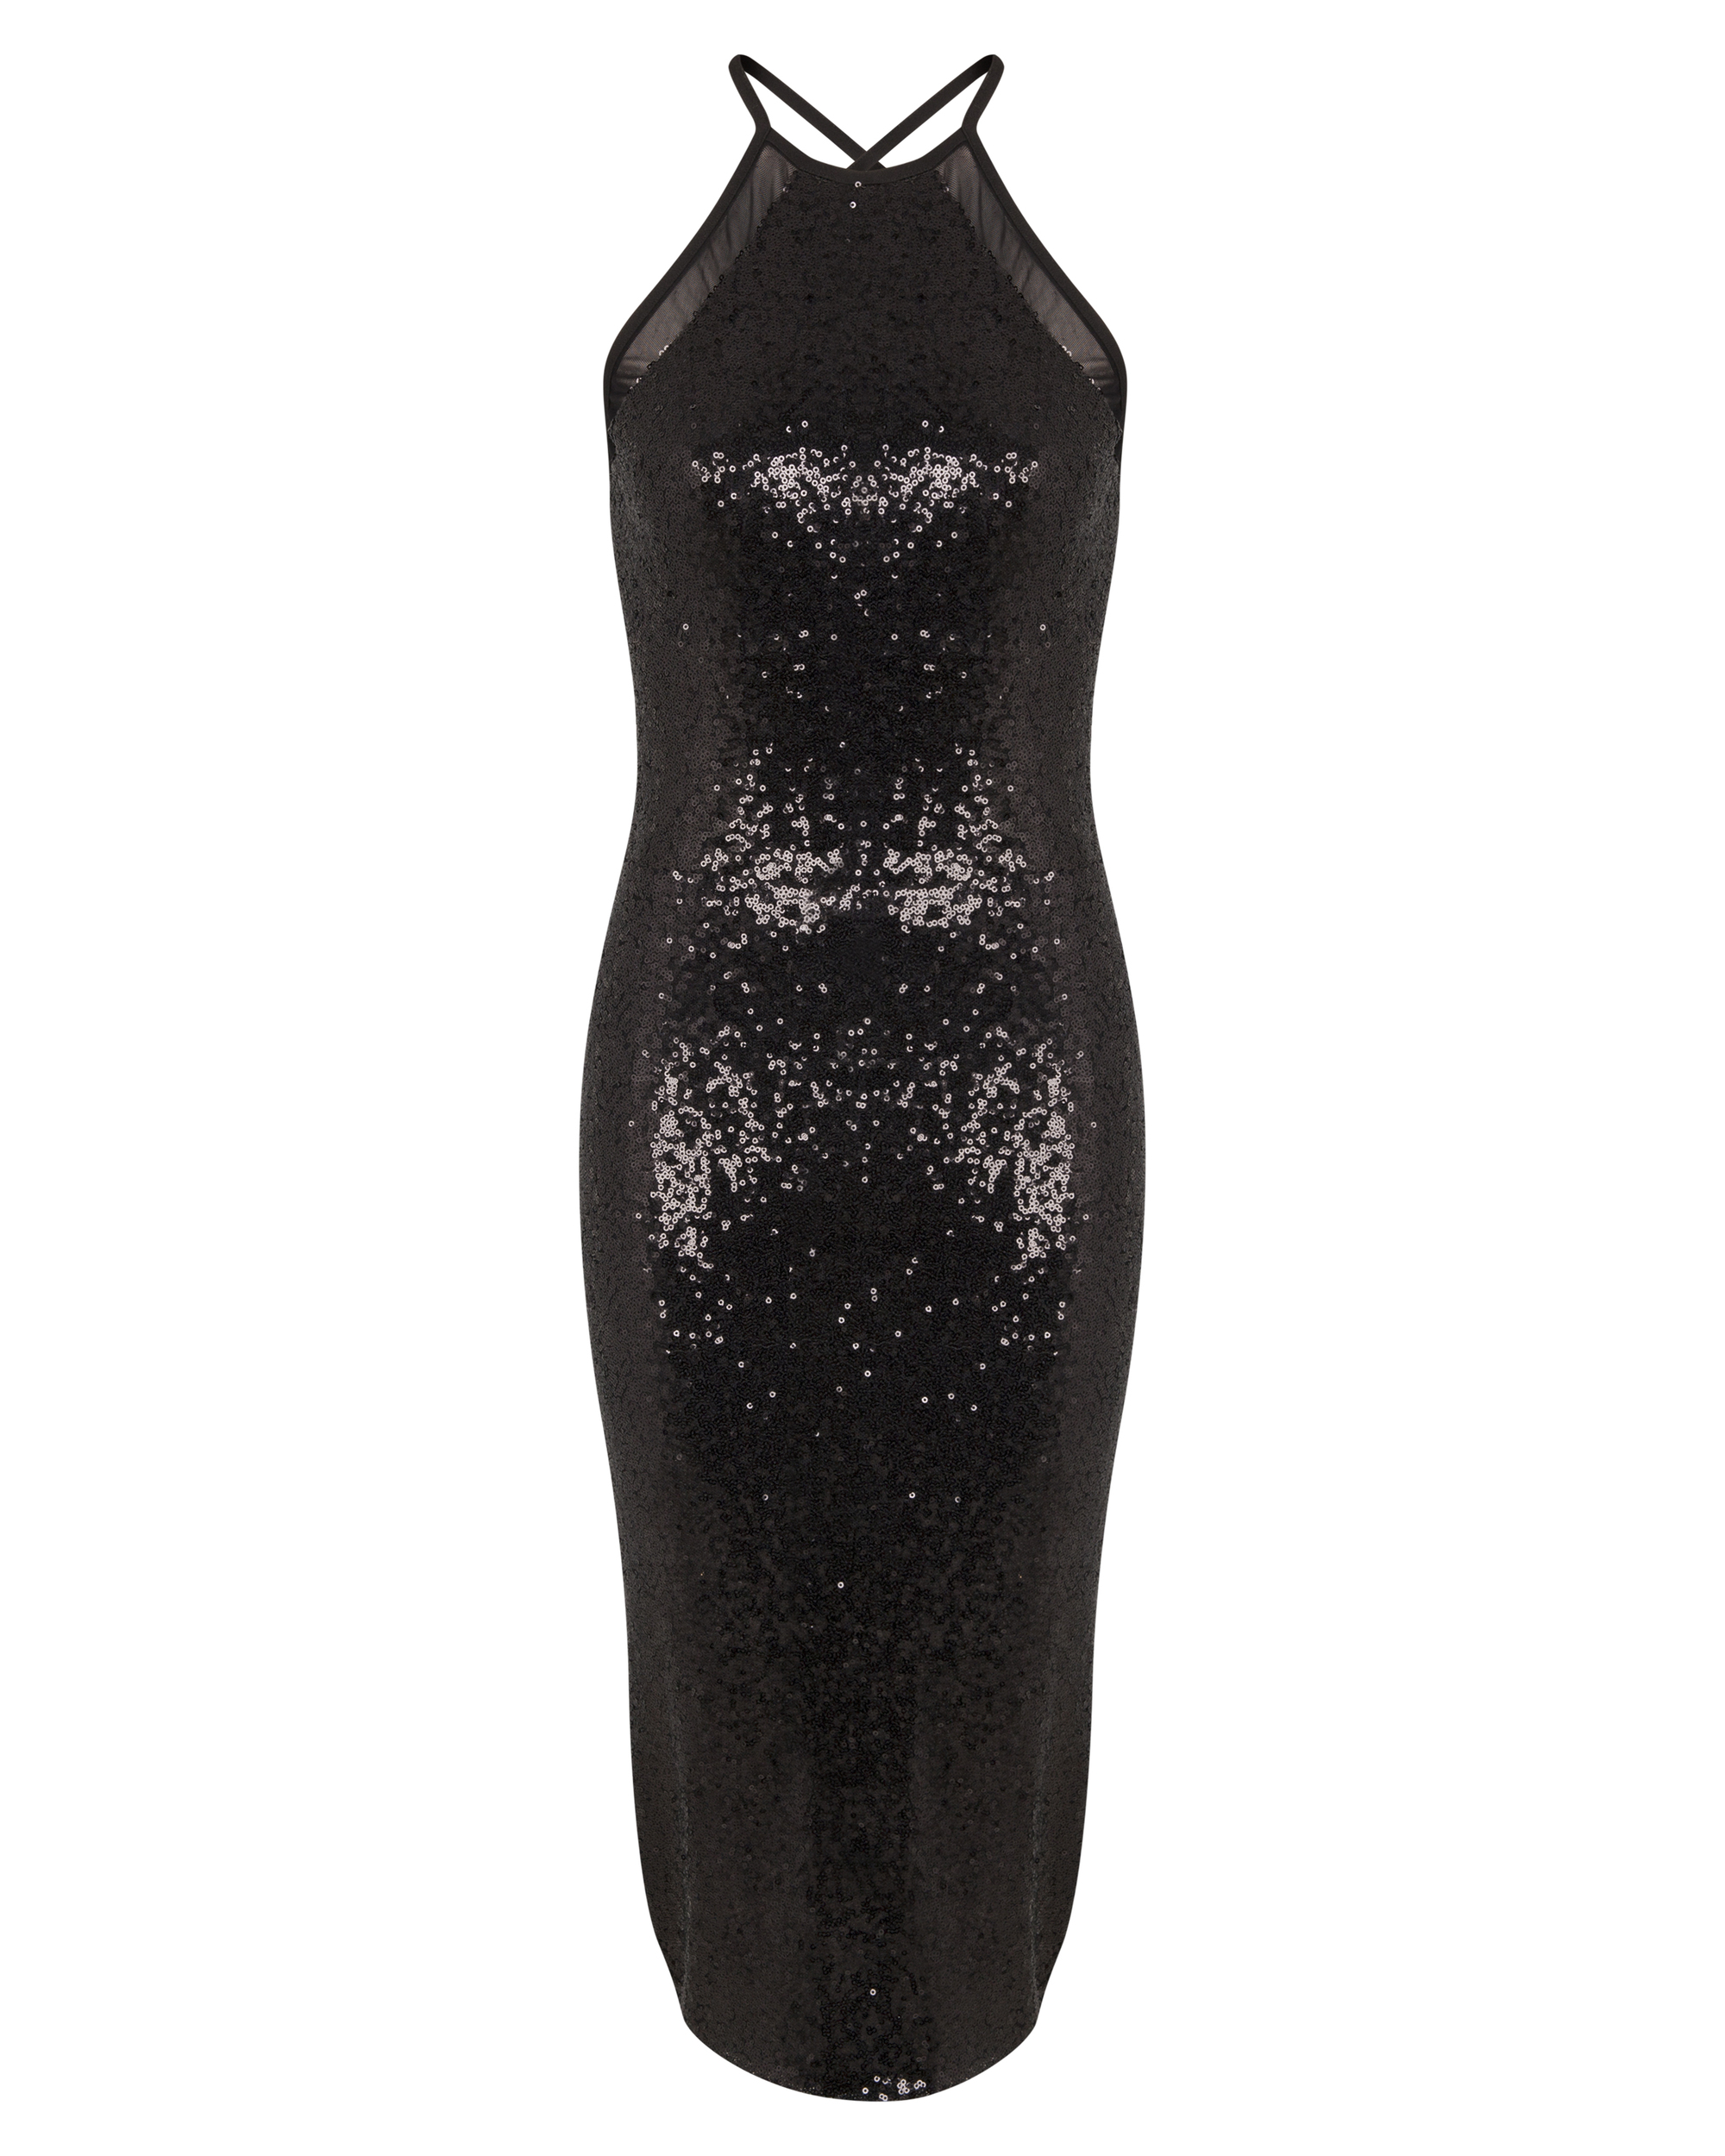 15 Christmas Party Dresses To Get You Noticed